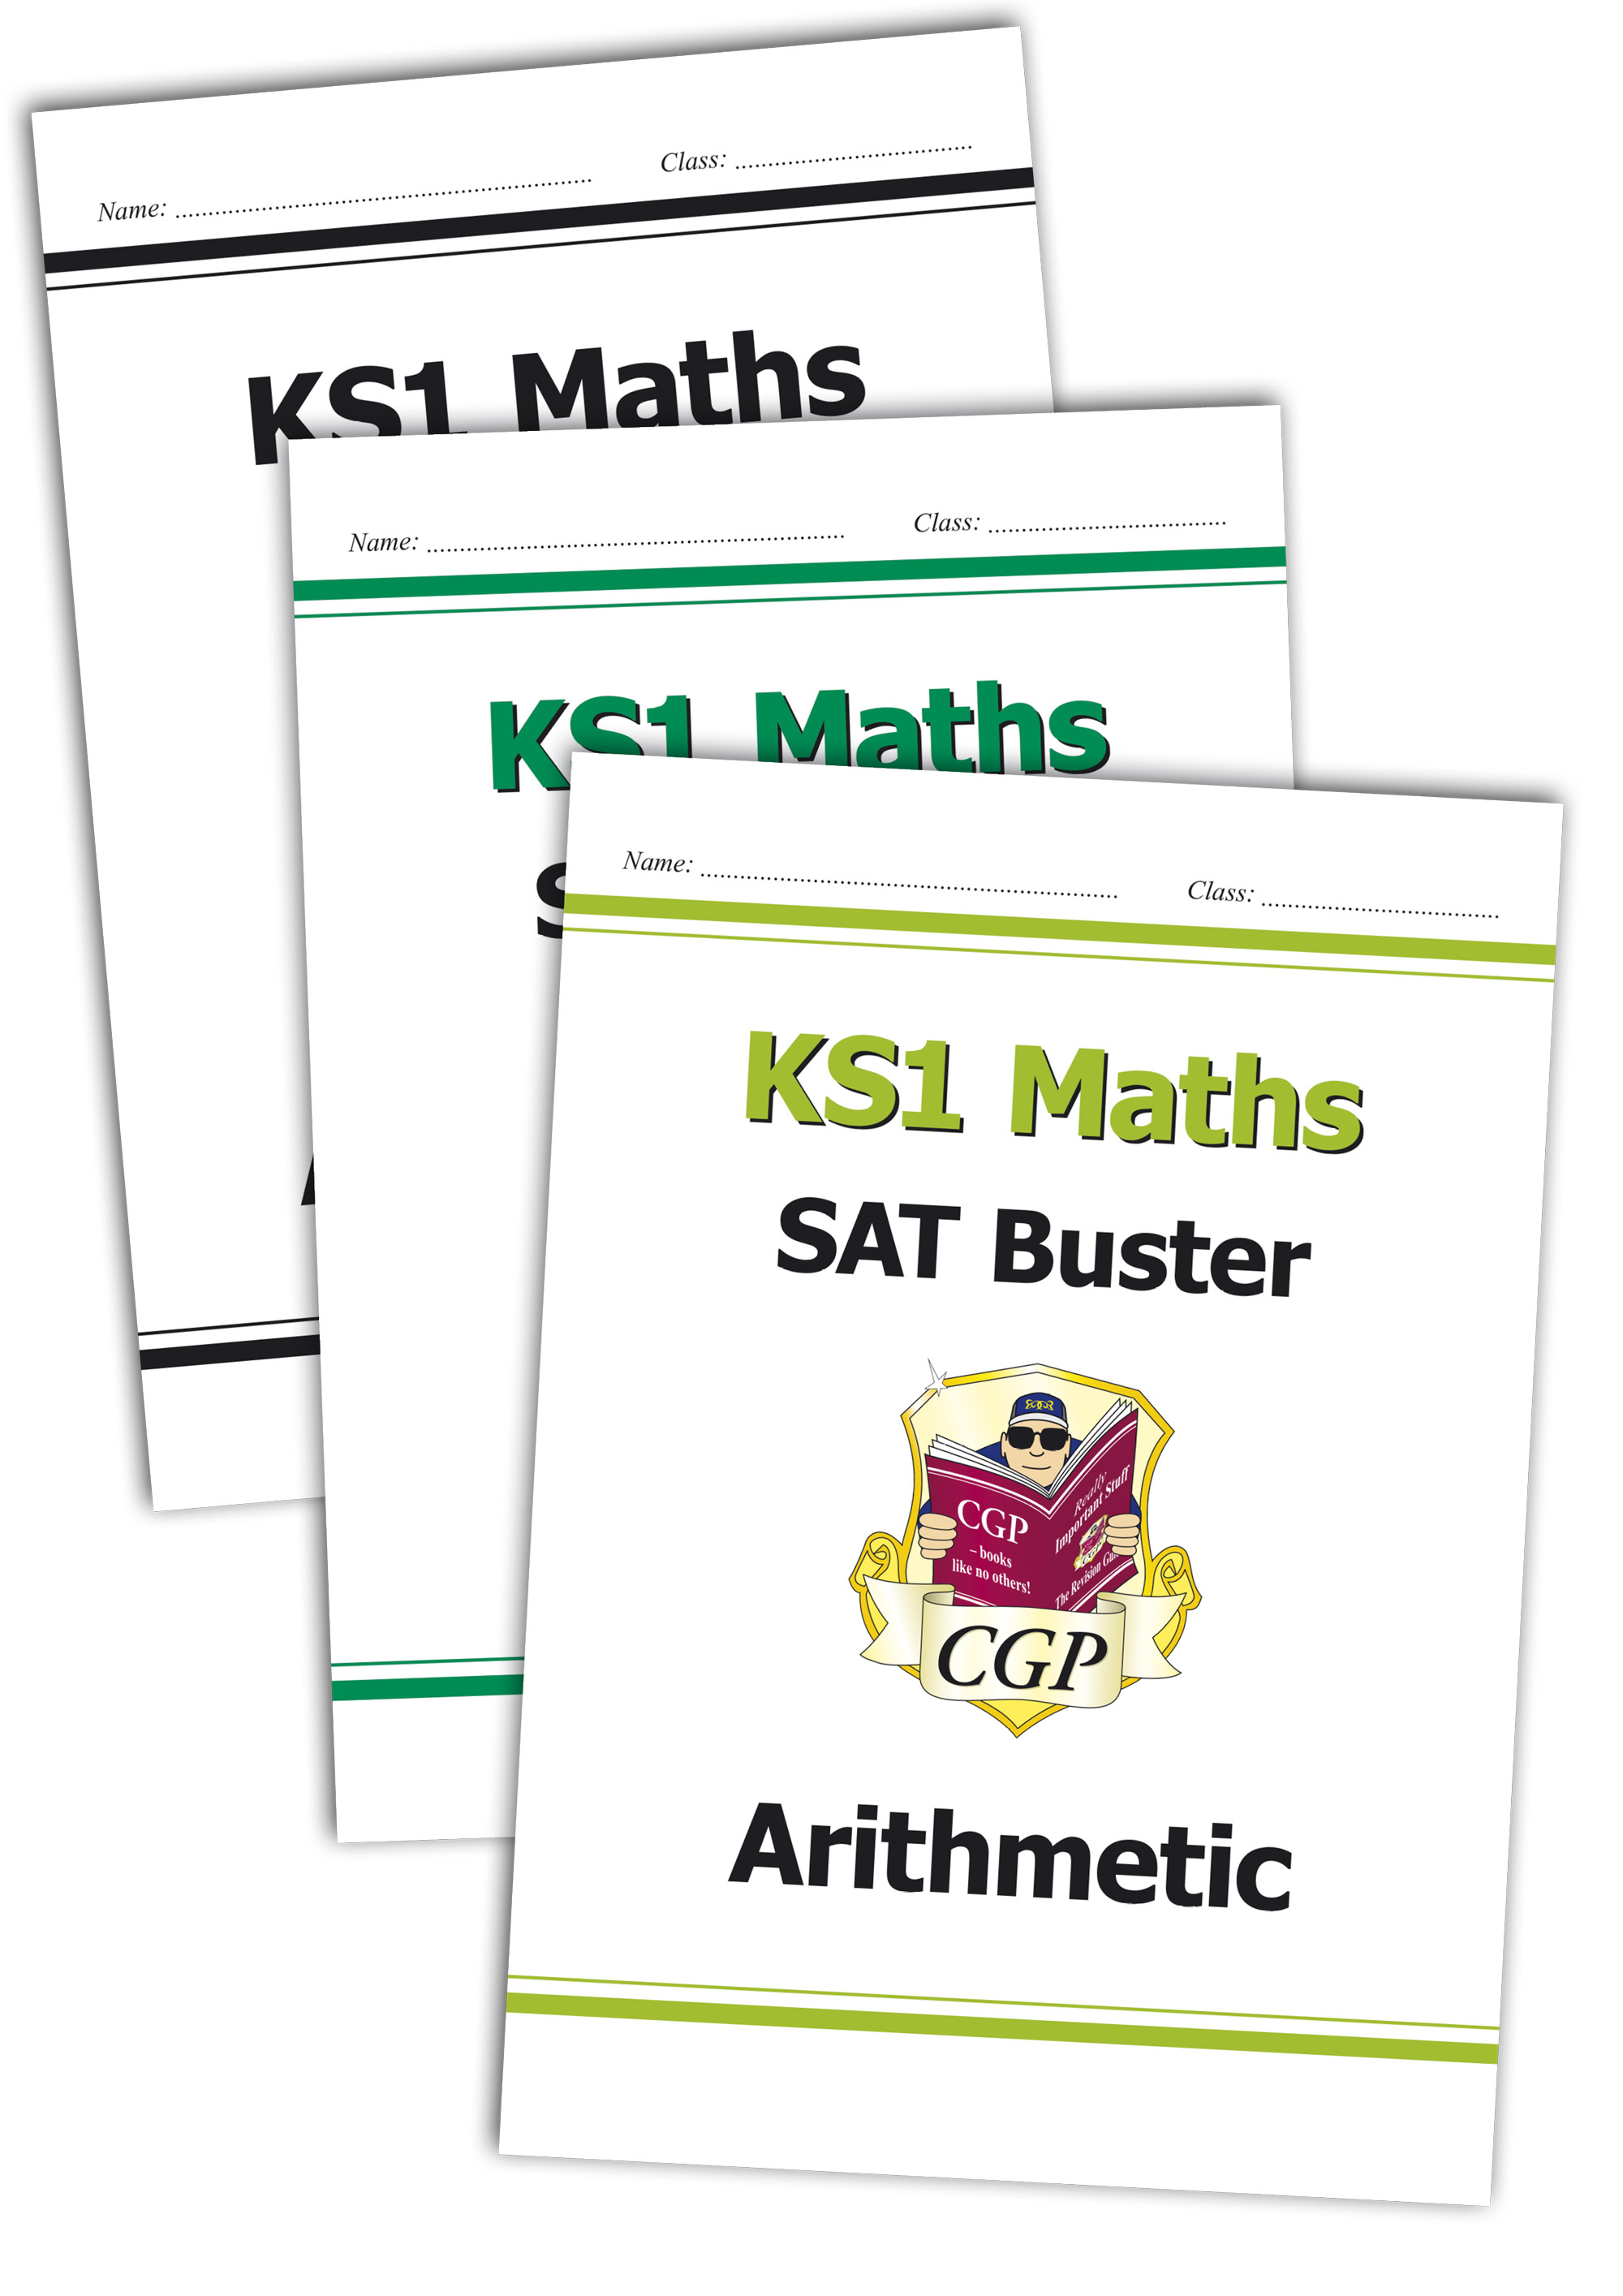 M2B11 - Complete KS1 Maths SAT Buster Bundle - incl answers (for the 2021 tests)